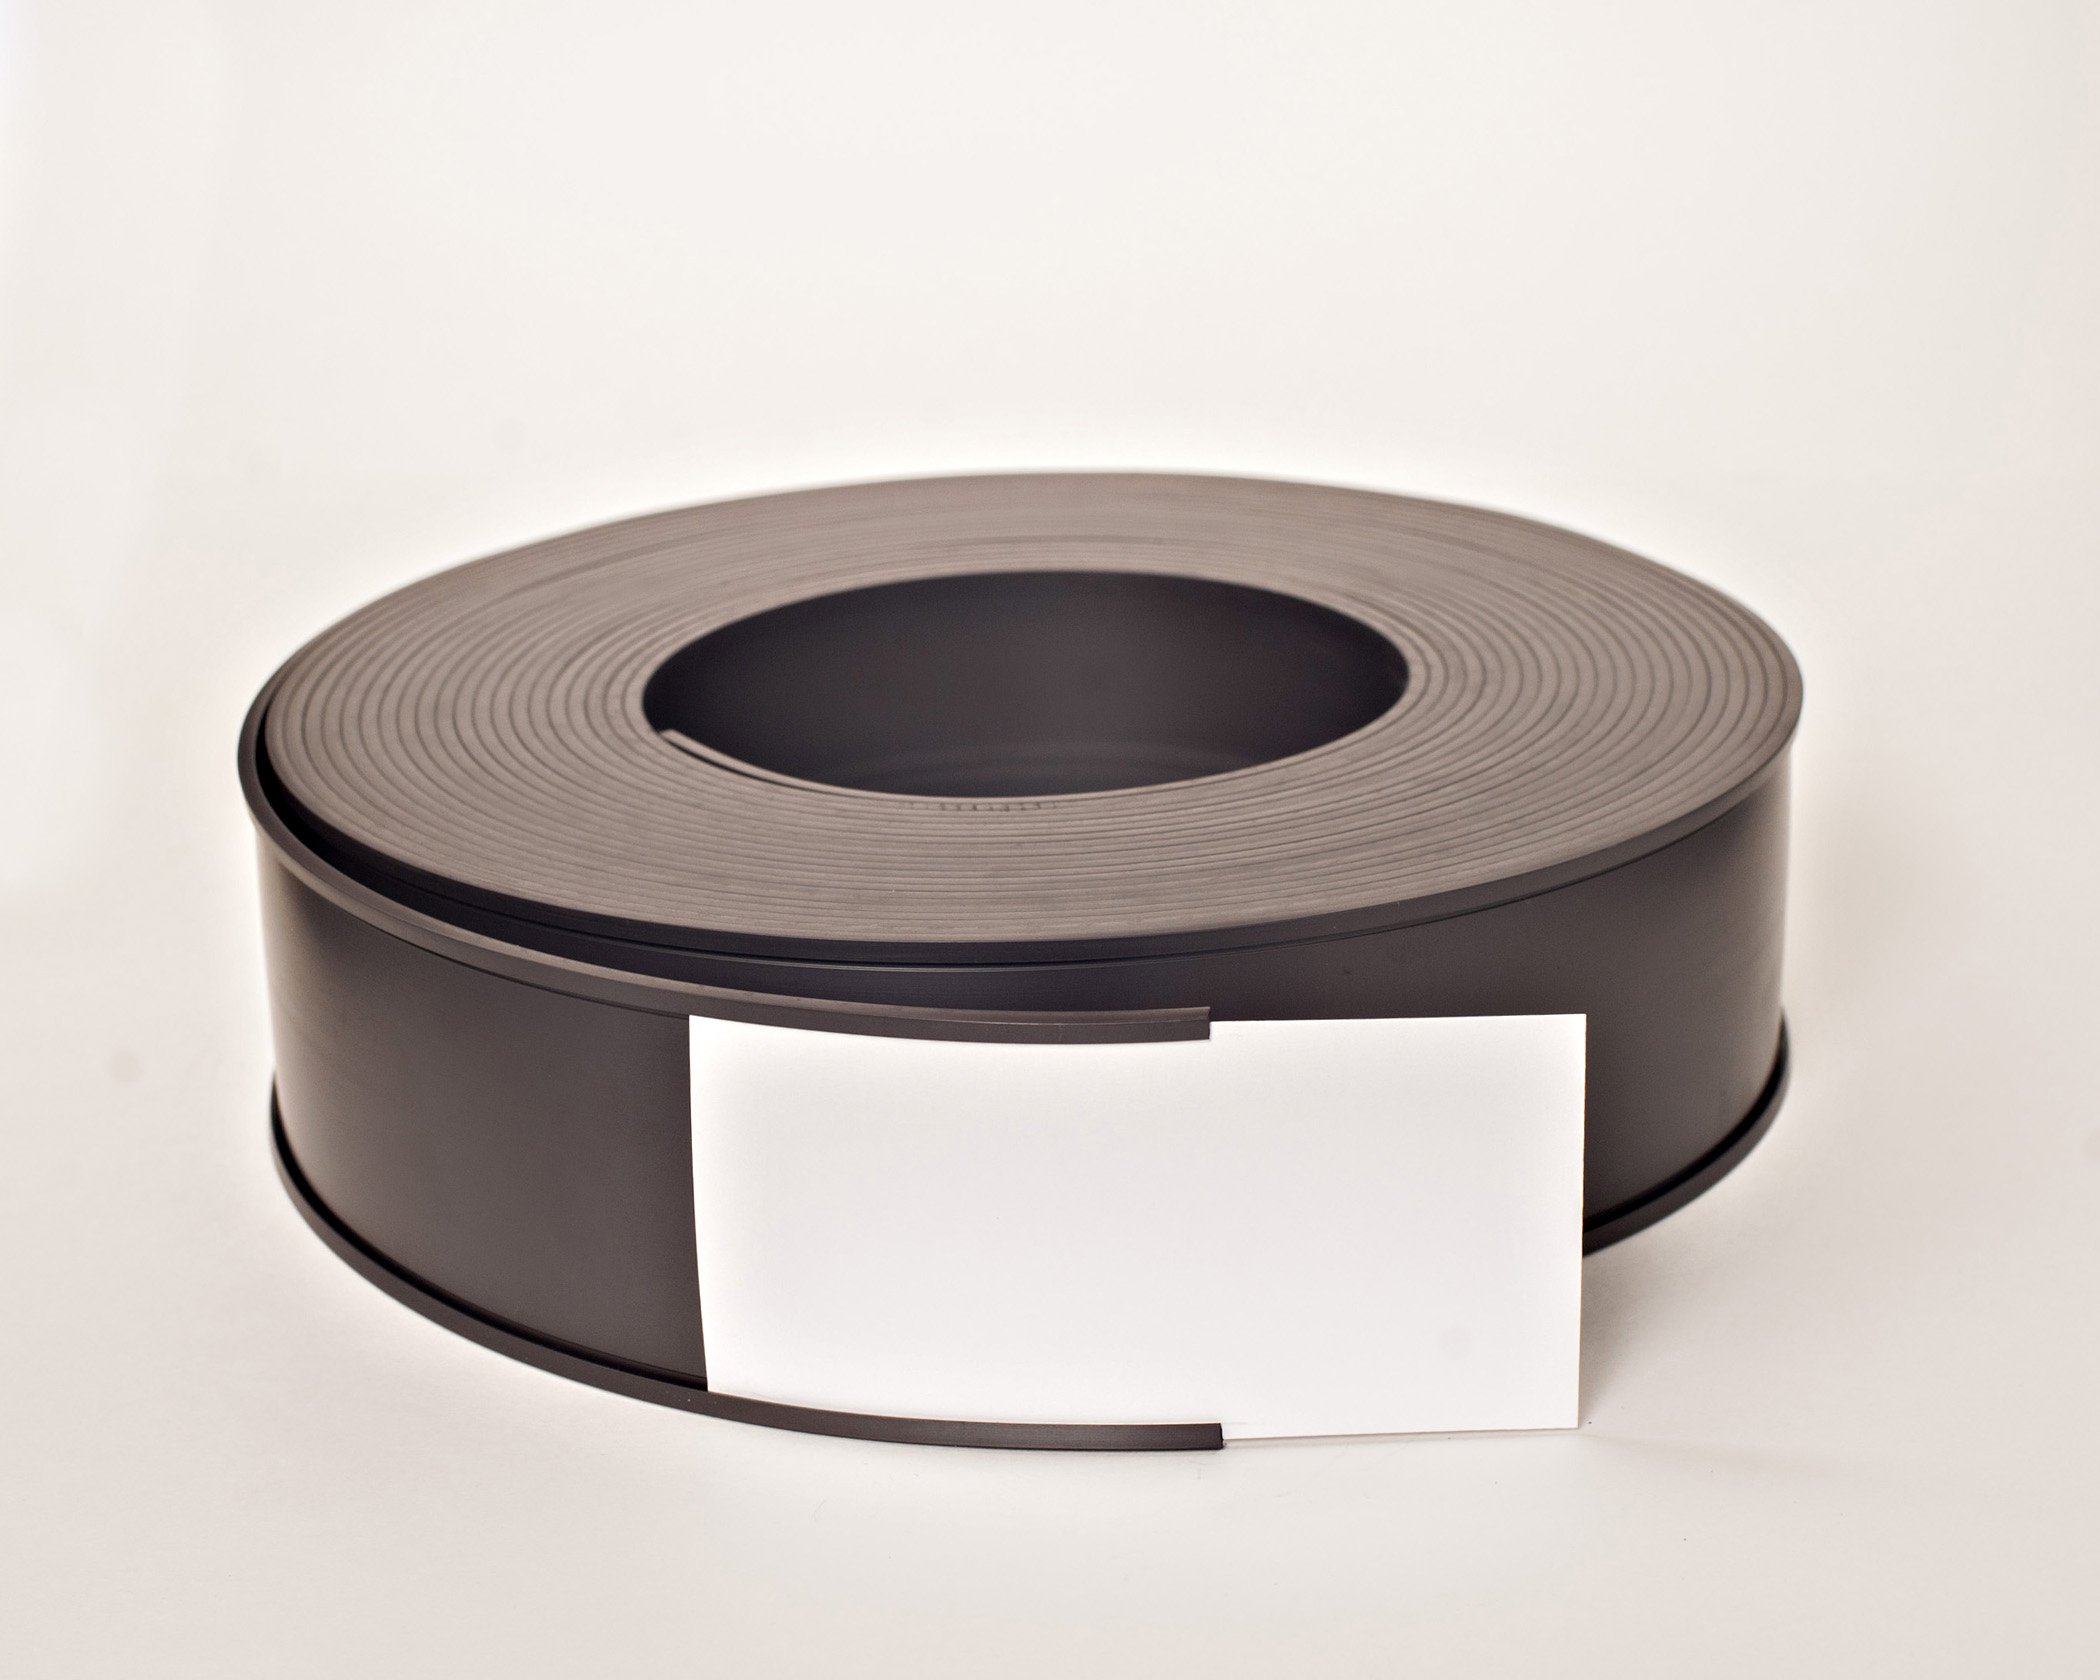 3.12'' x 50' Roll Magnetic Data Cardholder C-Channel - Shelf Labels by Discount Magnets